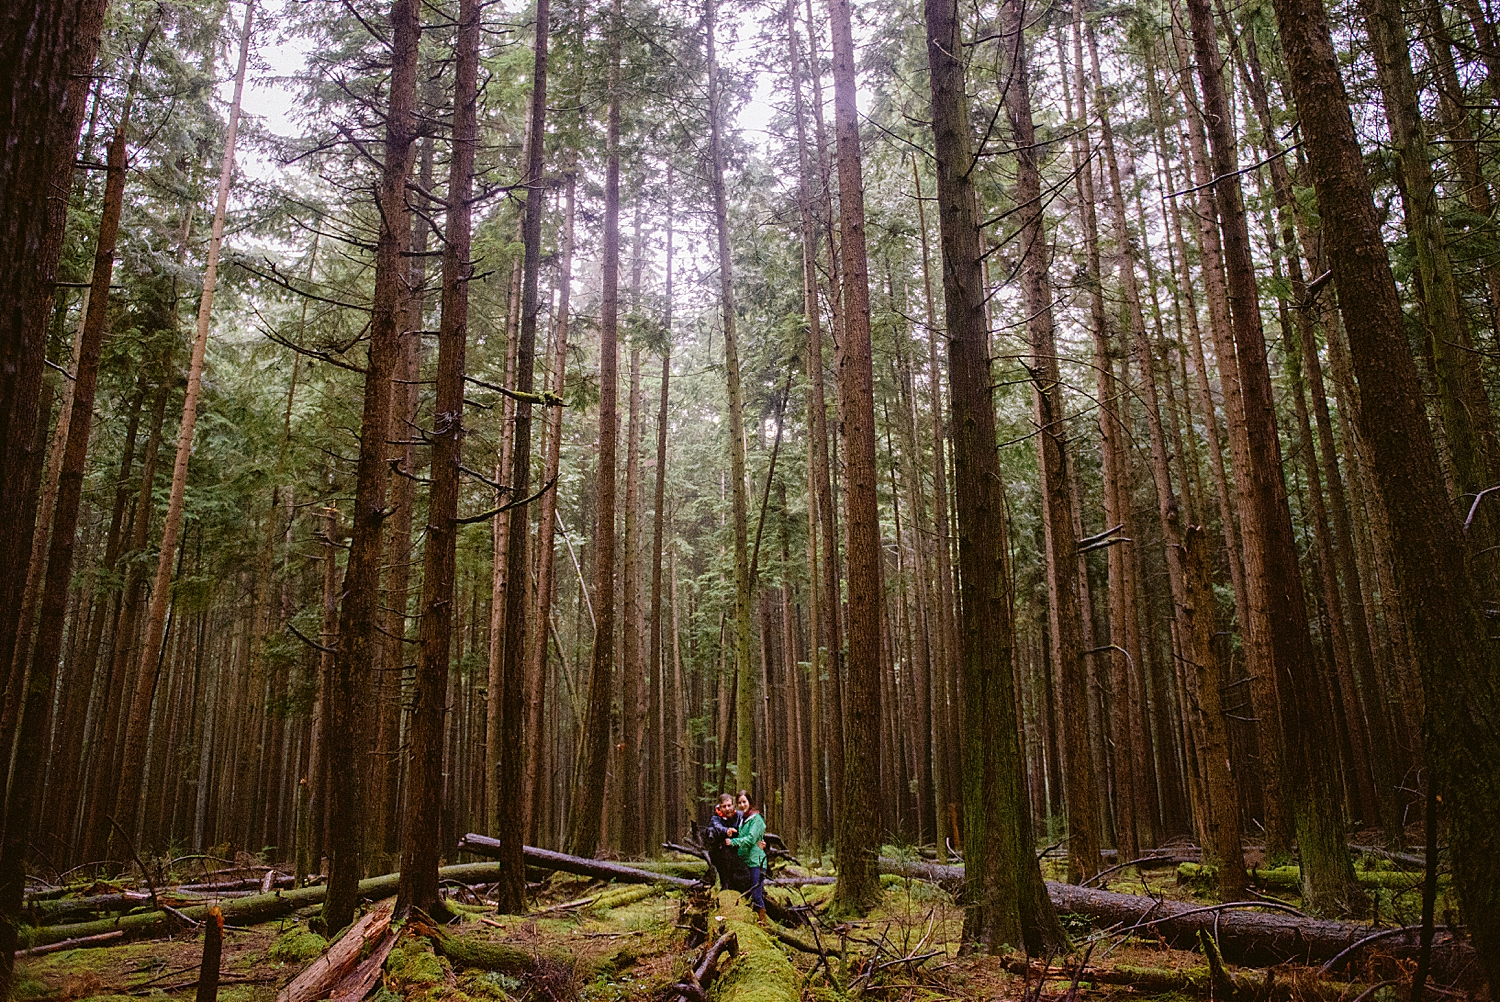 british columbia - pacific spirit park - engagement shoot - vancouver b.c.- maylies lang photography -04.jpg